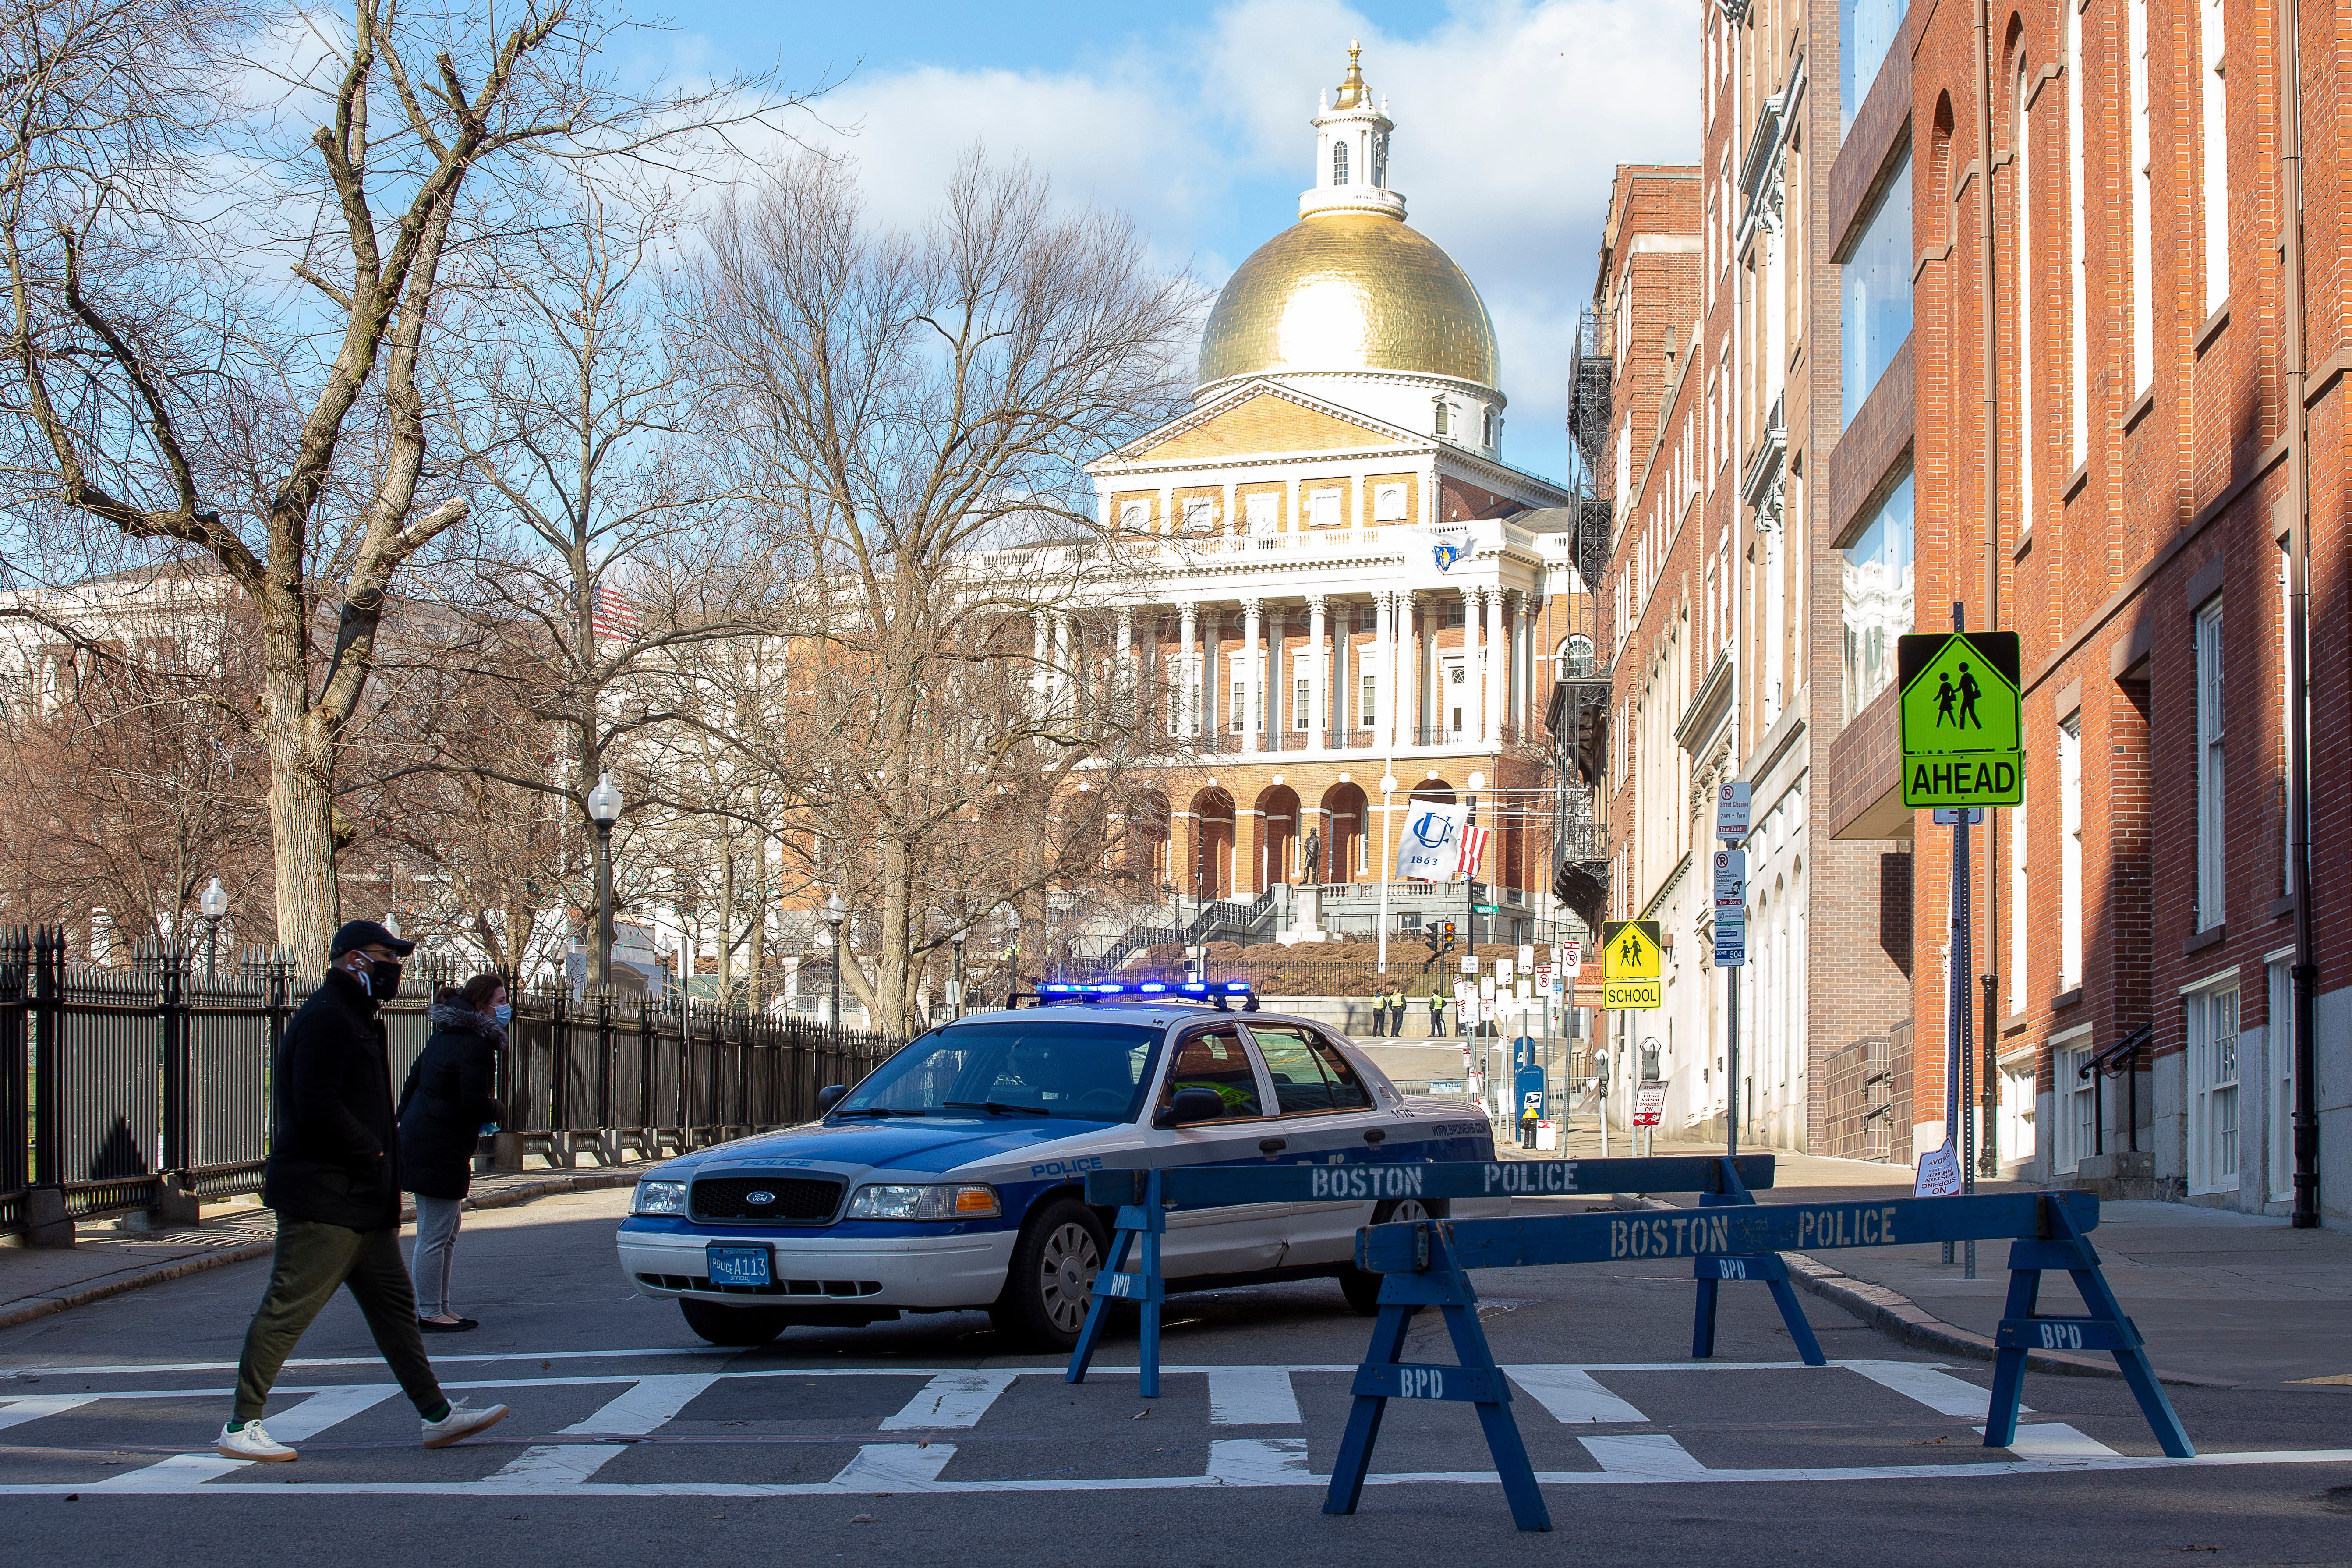 A number of streets in Boston's Beacon Hill around the Statehouse were closed down Sunday, Jan. 17, 2021, as a precaution to any protesters in the wake of the storming of the U.S. Capitol this month and ahead of the presidential inauguration.